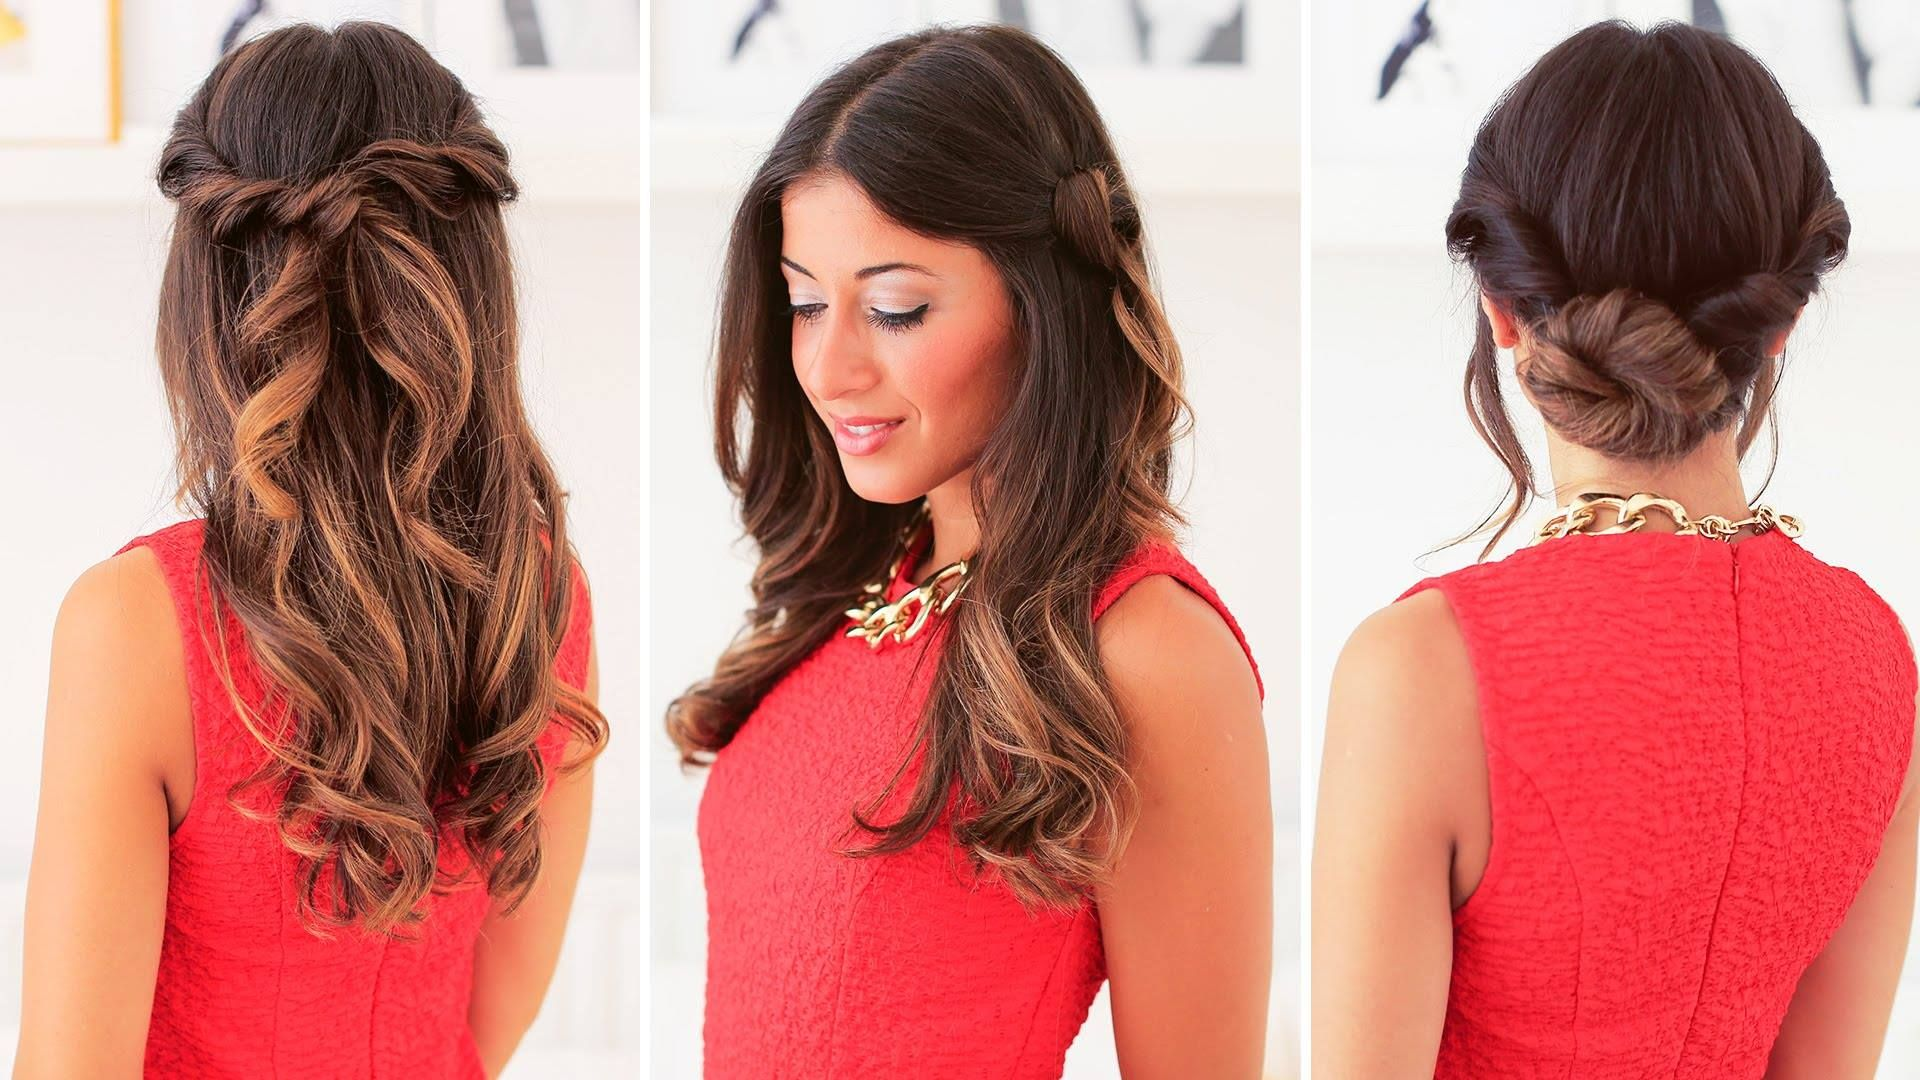 How to choose the perfect hairstyles for your face about